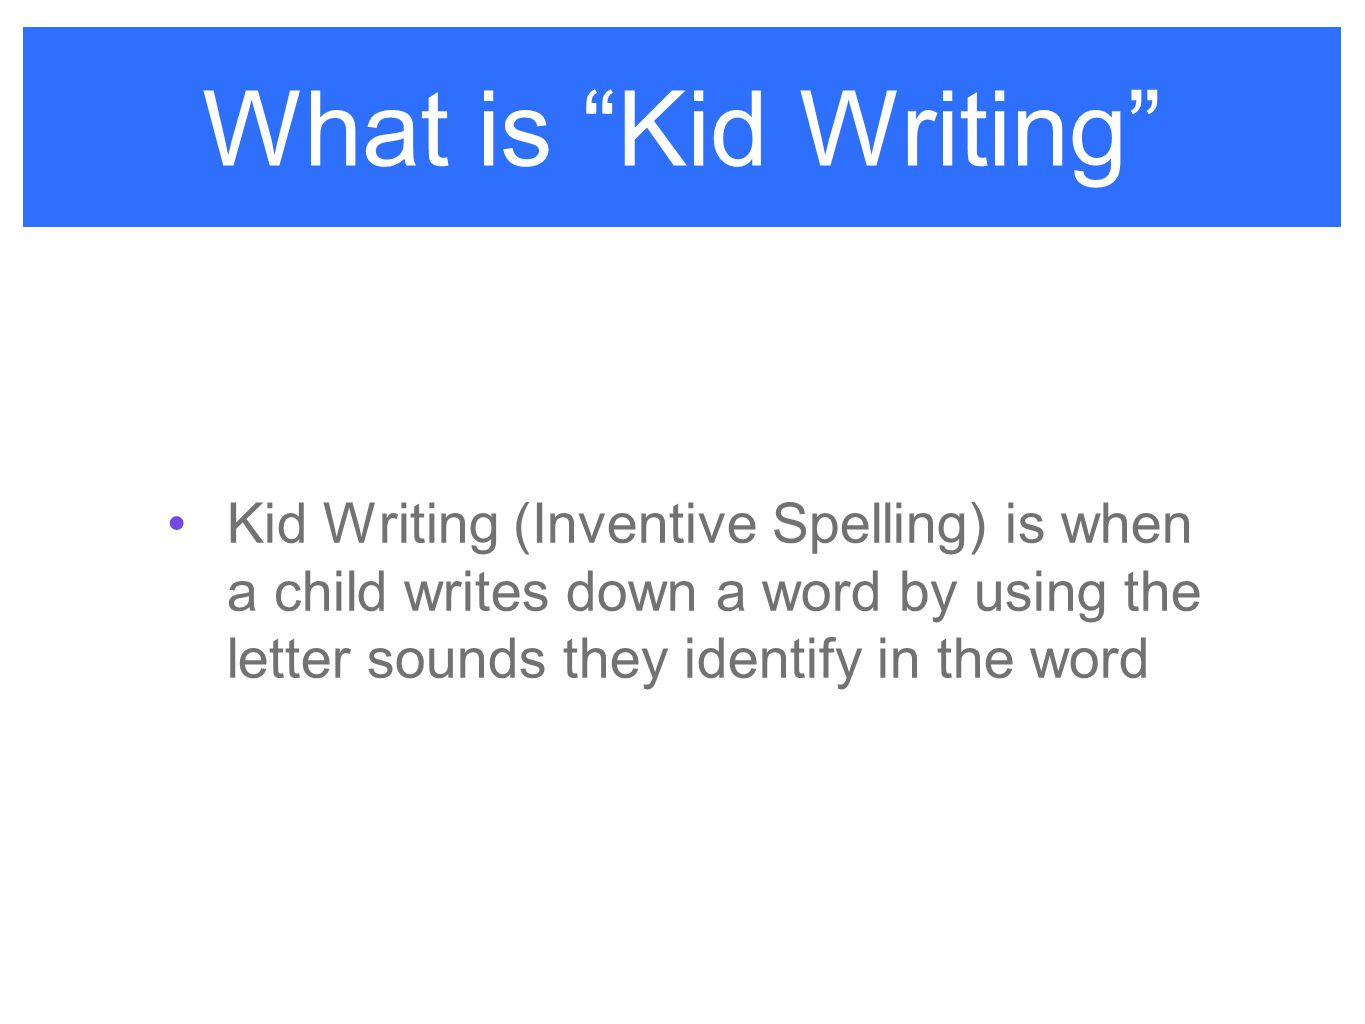 What is Kid Writing Kid Writing (Inventive Spelling) is when a child writes down a word by using the letter sounds they identify in the word